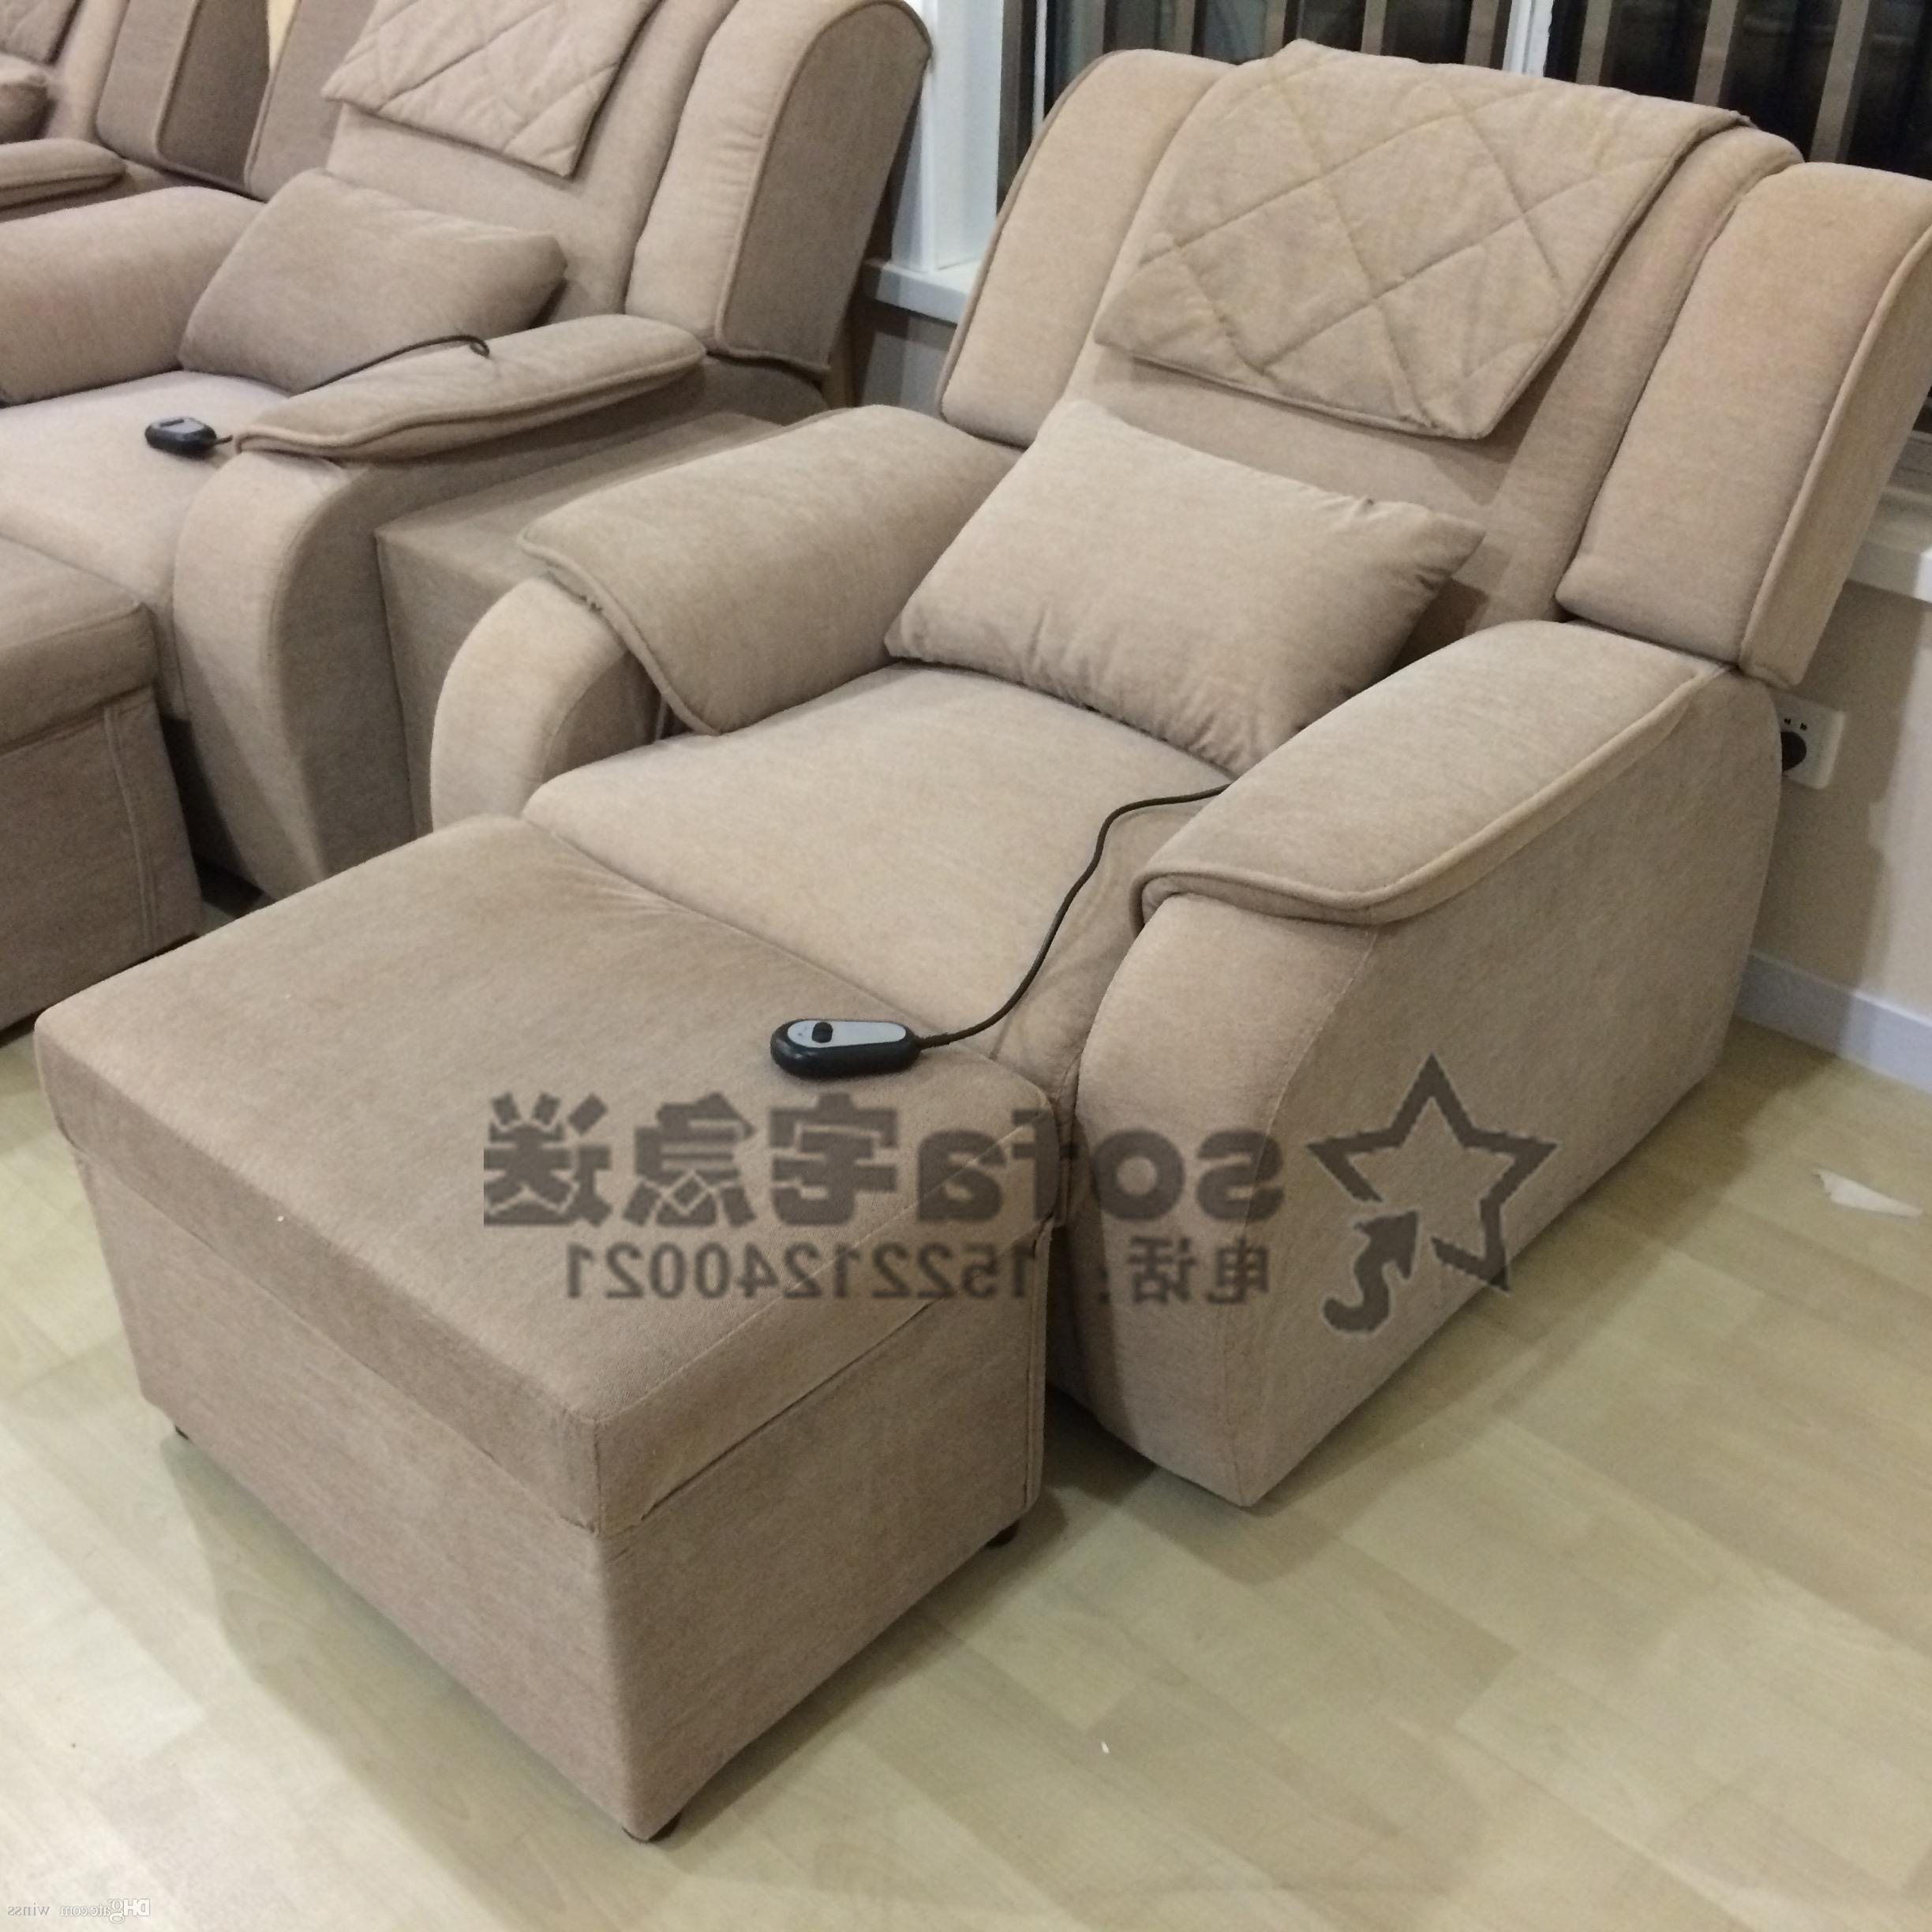 Foot Massage Sofa Chairs With Regard To Recent Easylovely Foot Massage Chair In Modern Home Decoration Idea C40 (Gallery 3 of 20)